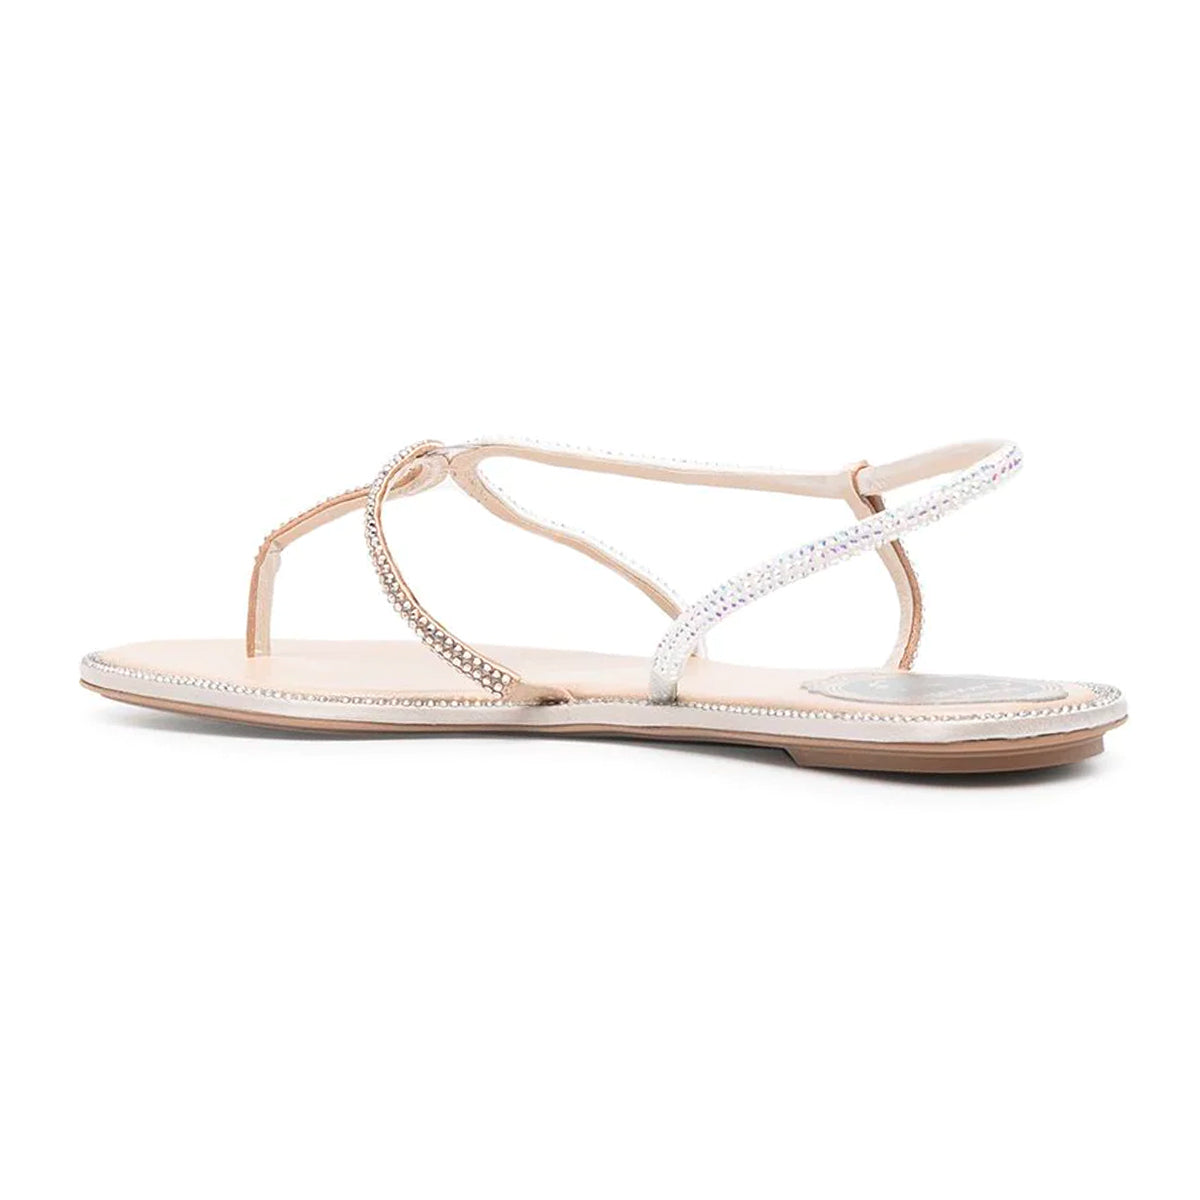 Arielle Crystal Embellished Flat Sandals